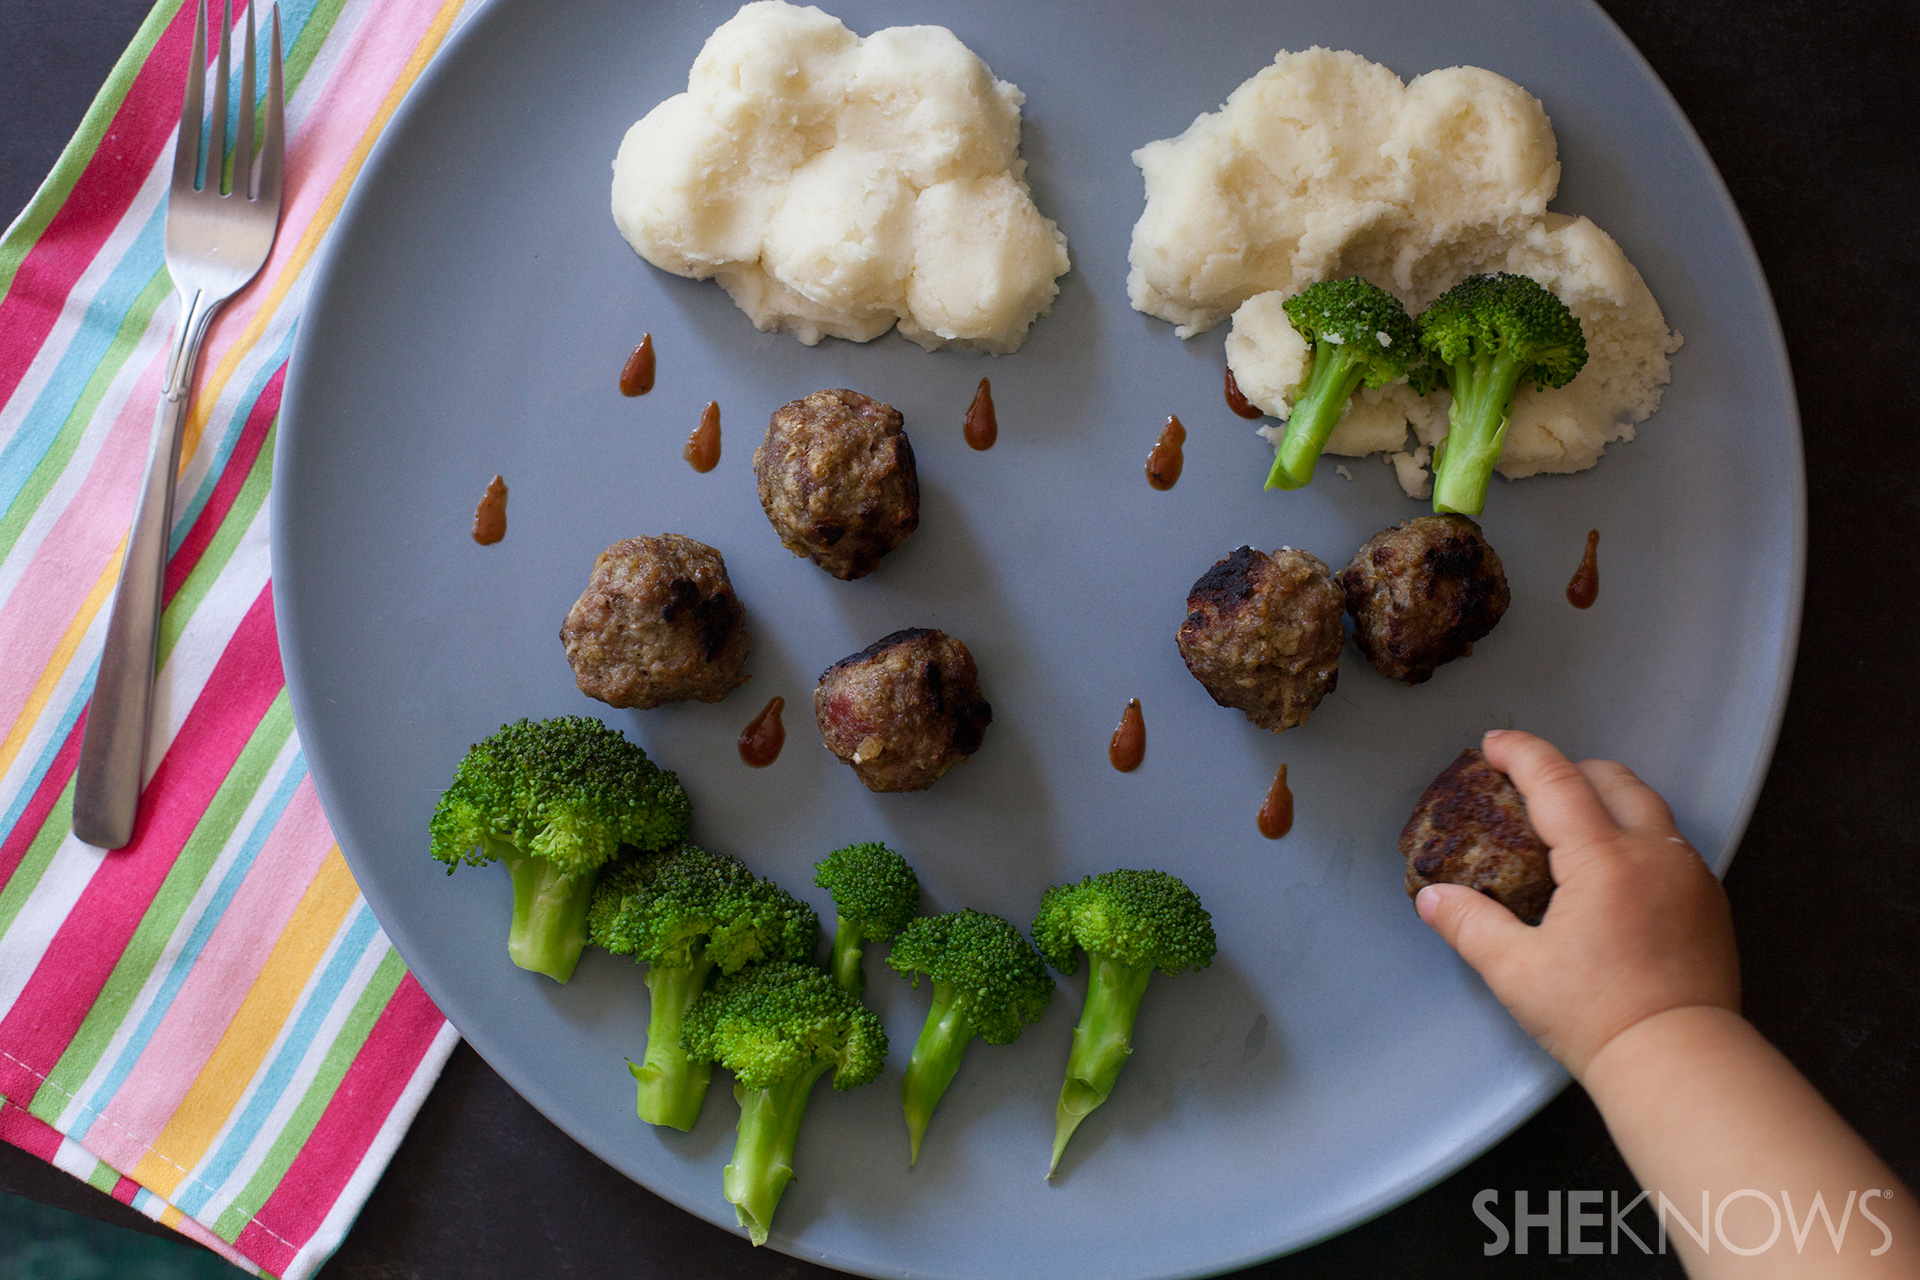 Dinner forecast is cloudy with a chance of meatballs